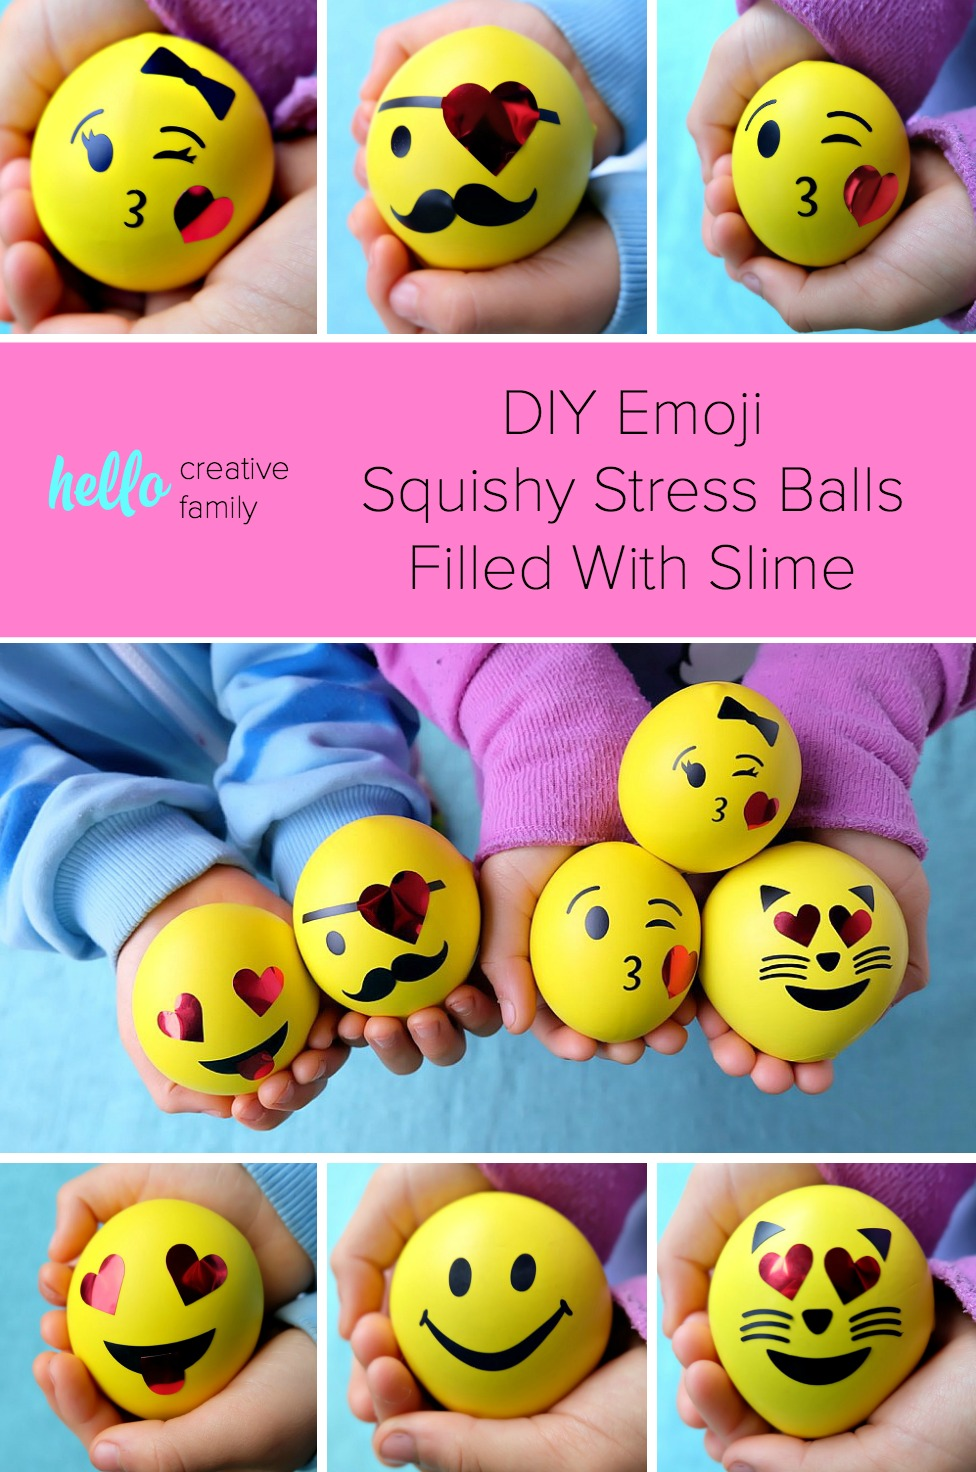 These easy DIY Emoji Squishy Stress Balls Filled With Slime take all of your kids favorite things and puts it into one fun kids craft! Emojis? Check! Squishies? Check! Slime? Check! Perfect for non-candy Easter Basket Stuffer ideas, Valentine's Day, Birthday Party Favors and more! Make using your Cricut or with balloons pre-printed with emojis or happy faces. #Crafts #PartyFavors #emojis #slime #Cricut